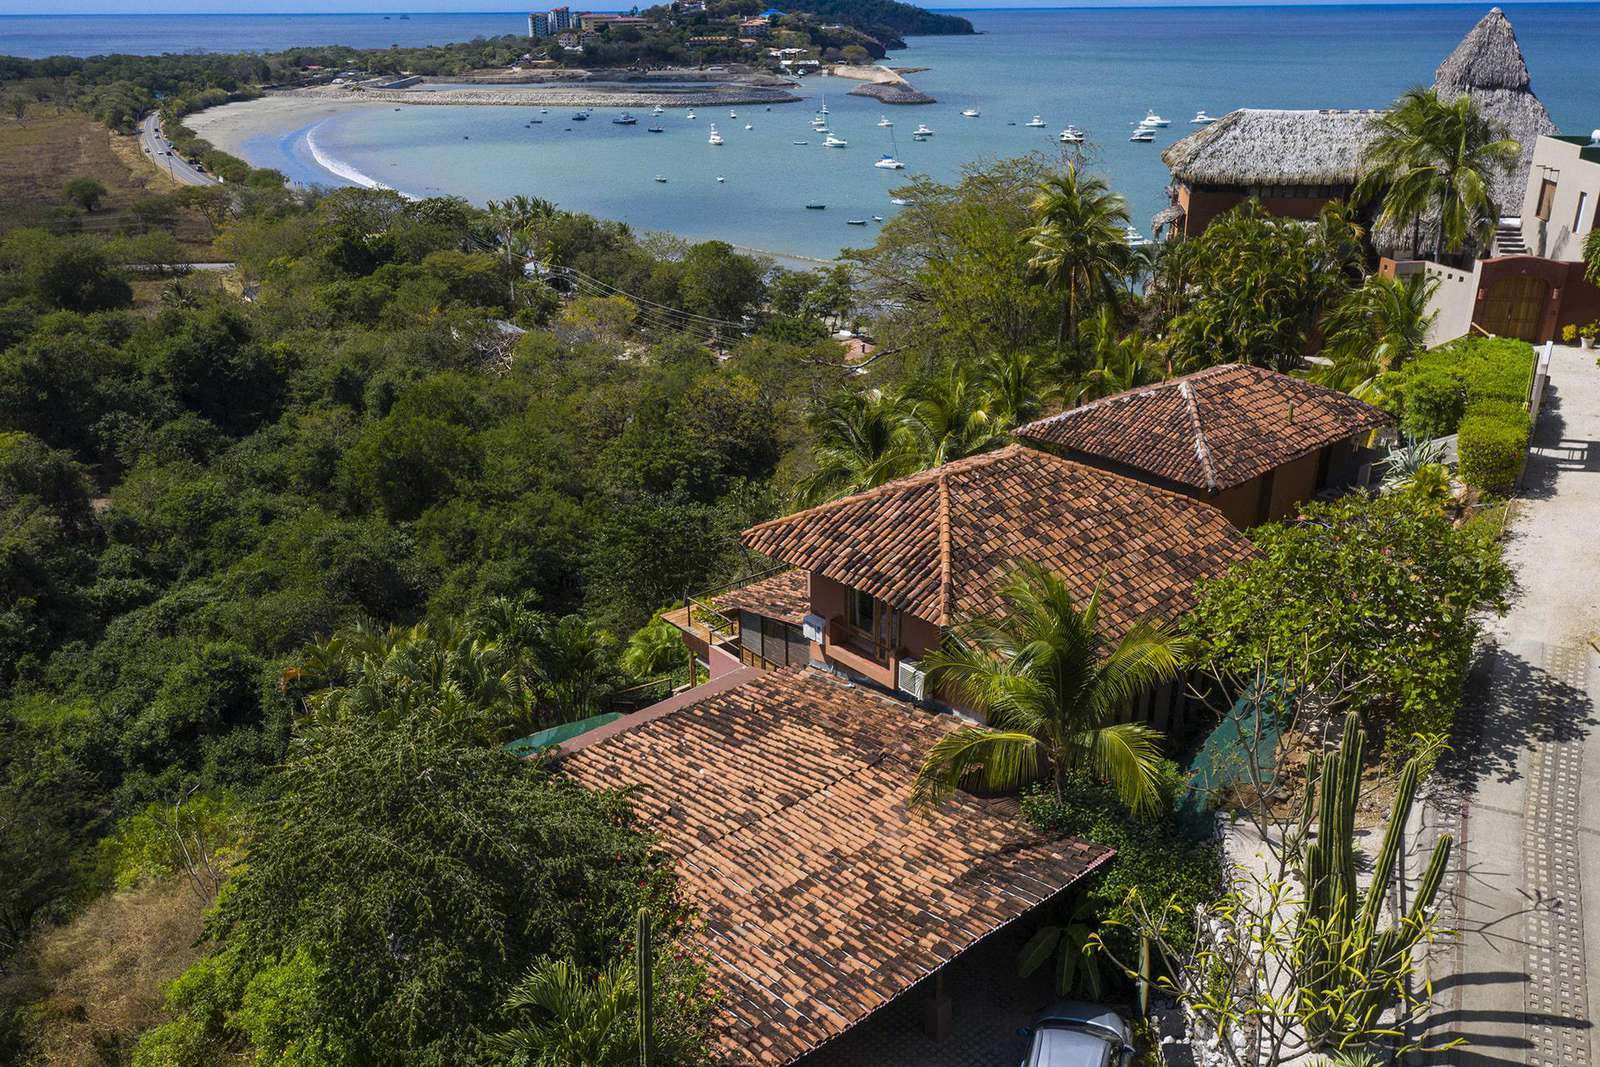 Aerial view of the house and Potrero Bay - property